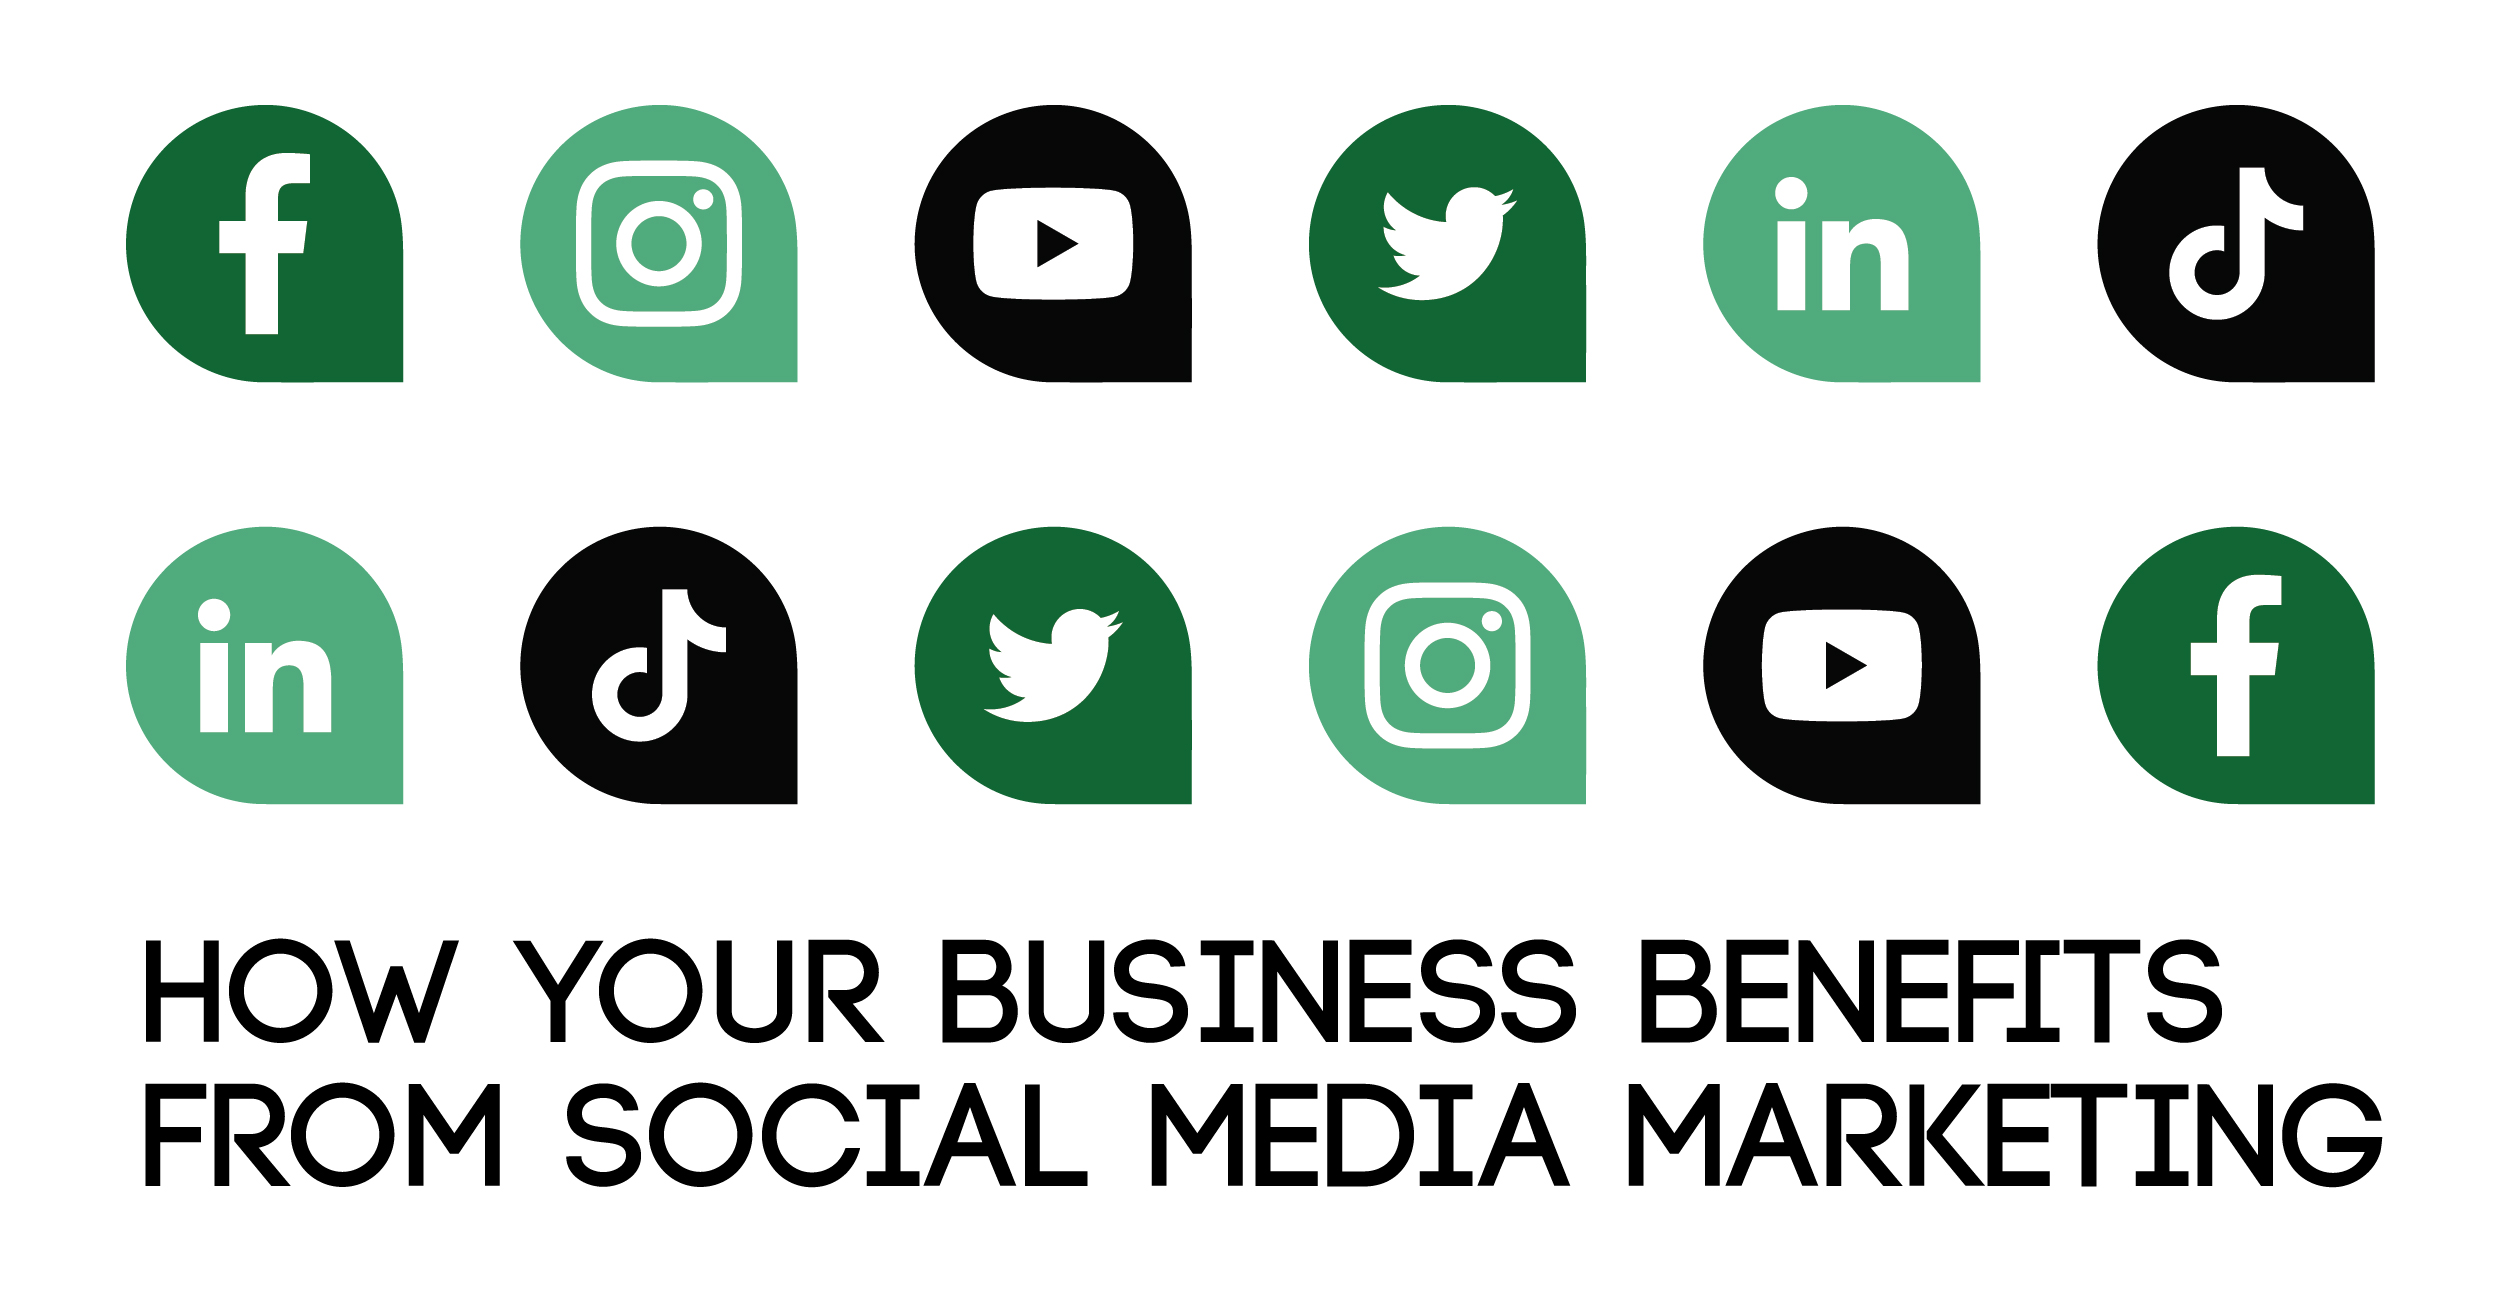 How Your Business Benefits from Social Media Marketing